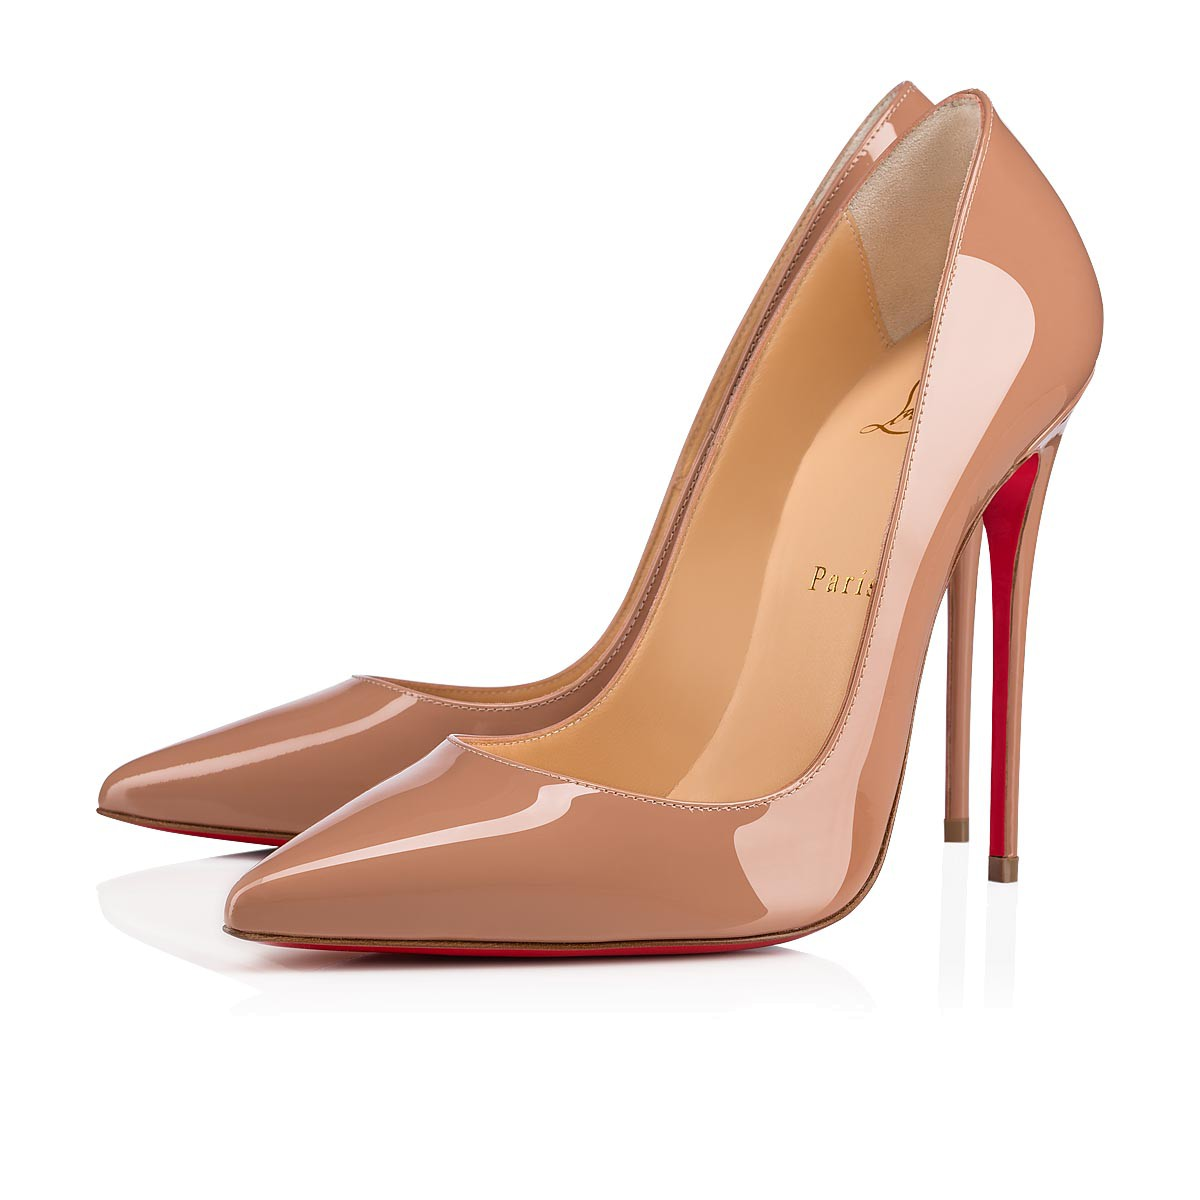 Patent Christian Nude 120 Leather Shoes Women So Kate Louboutin 6TwqHH